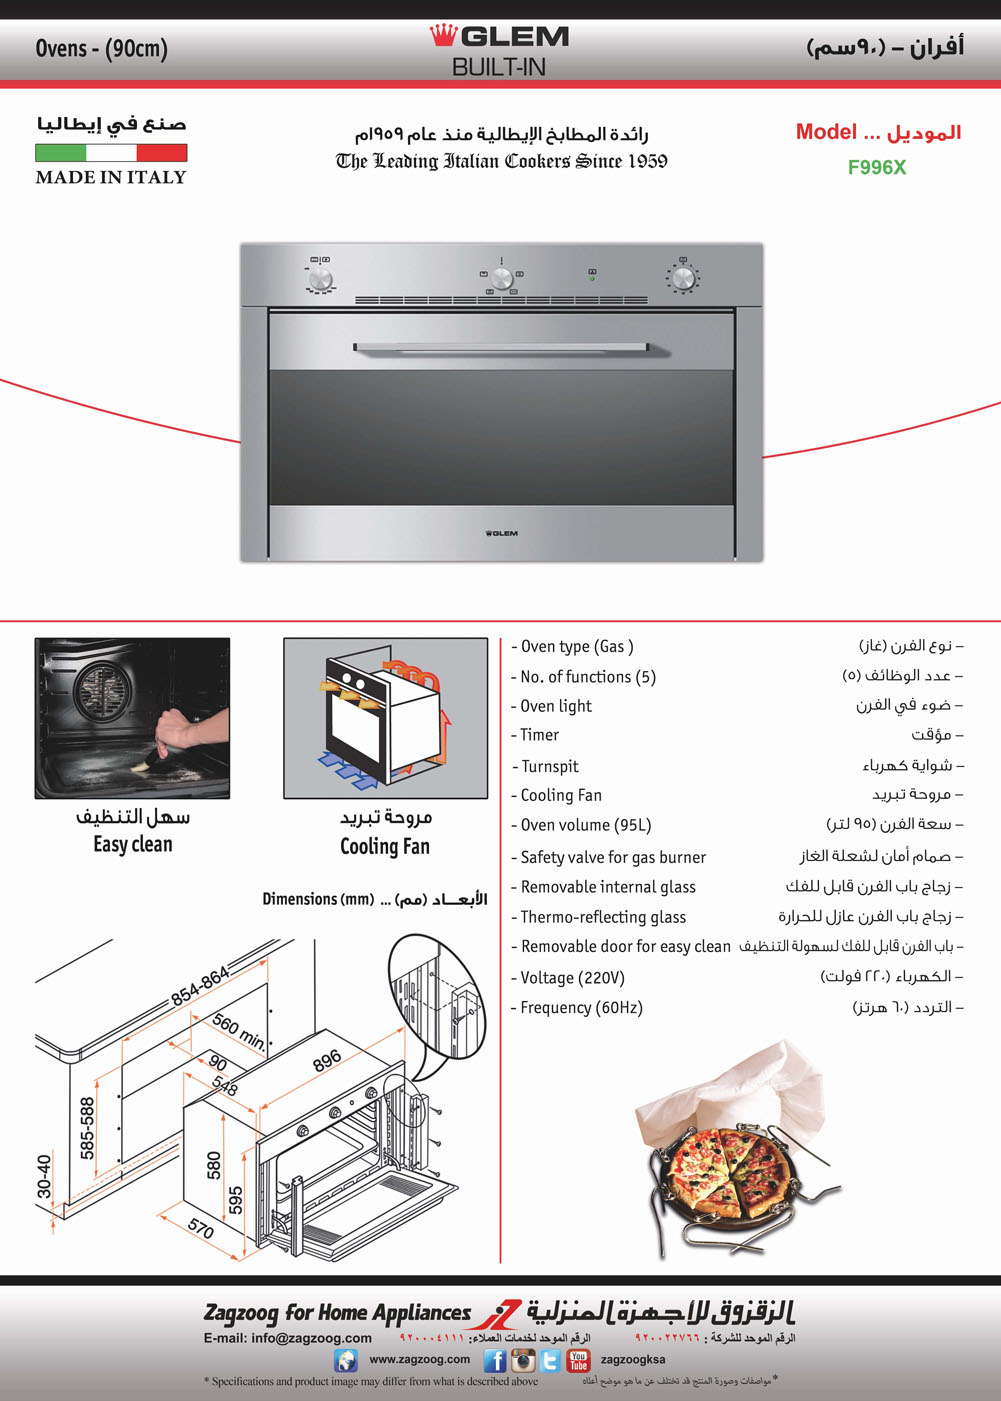 Glem Gas Oven (90)cm, (5) Functions